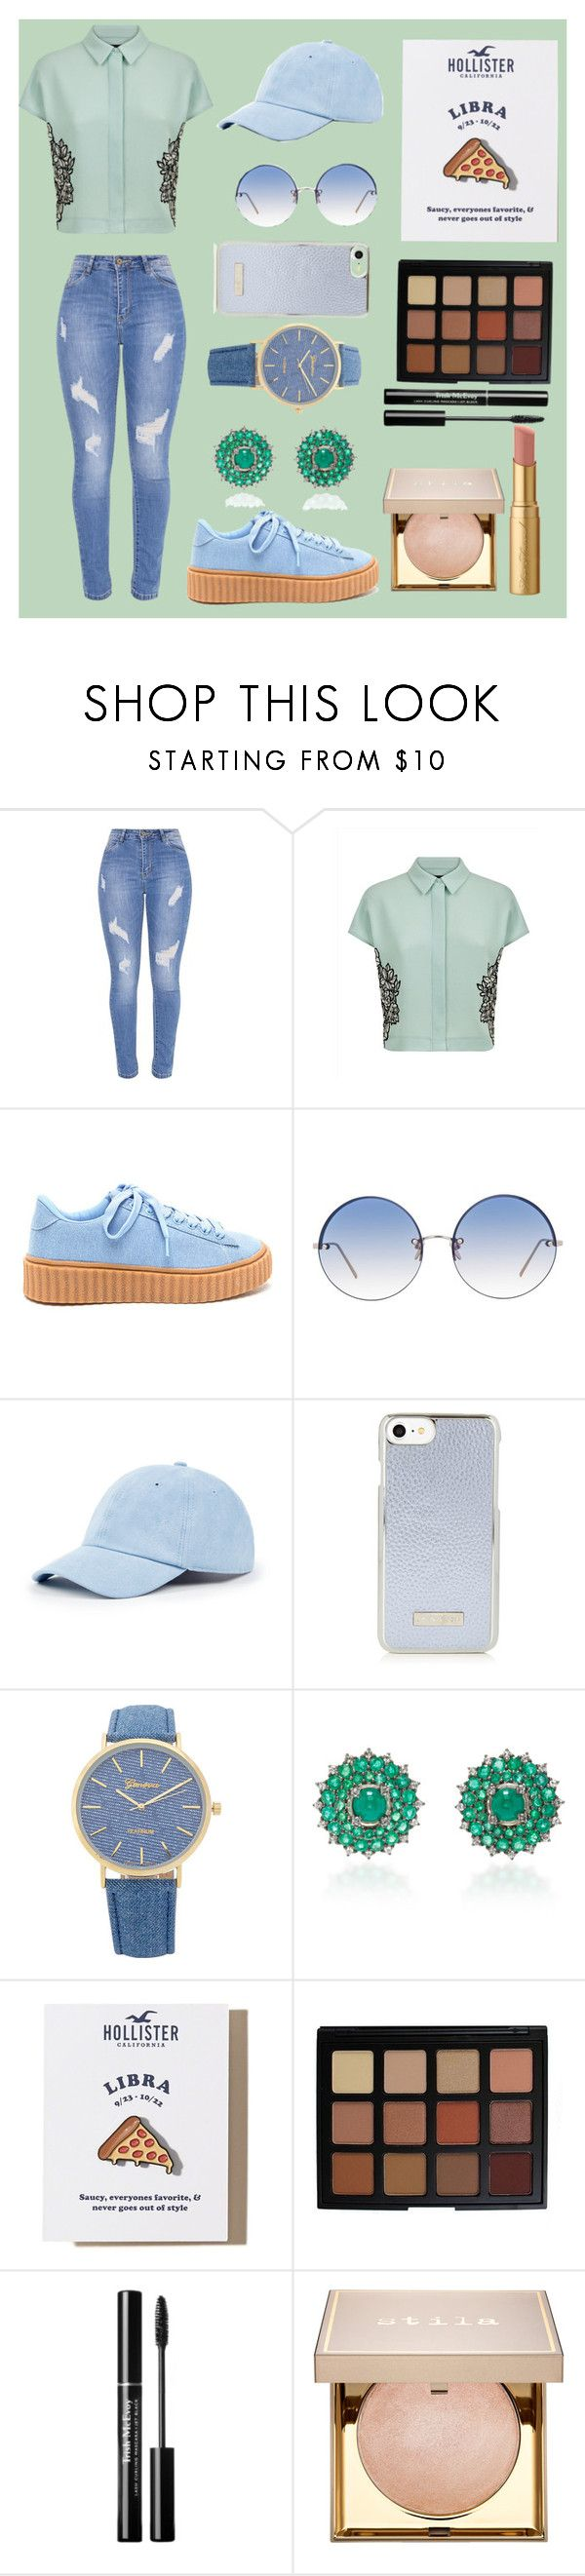 """""""Libra - Mint Green"""" by biajacksonwinchester ❤ liked on Polyvore featuring Jaeger, Linda Farrow, Sole Society, Nam Cho, Hollister Co., Morphe, Stila and Too Faced Cosmetics"""